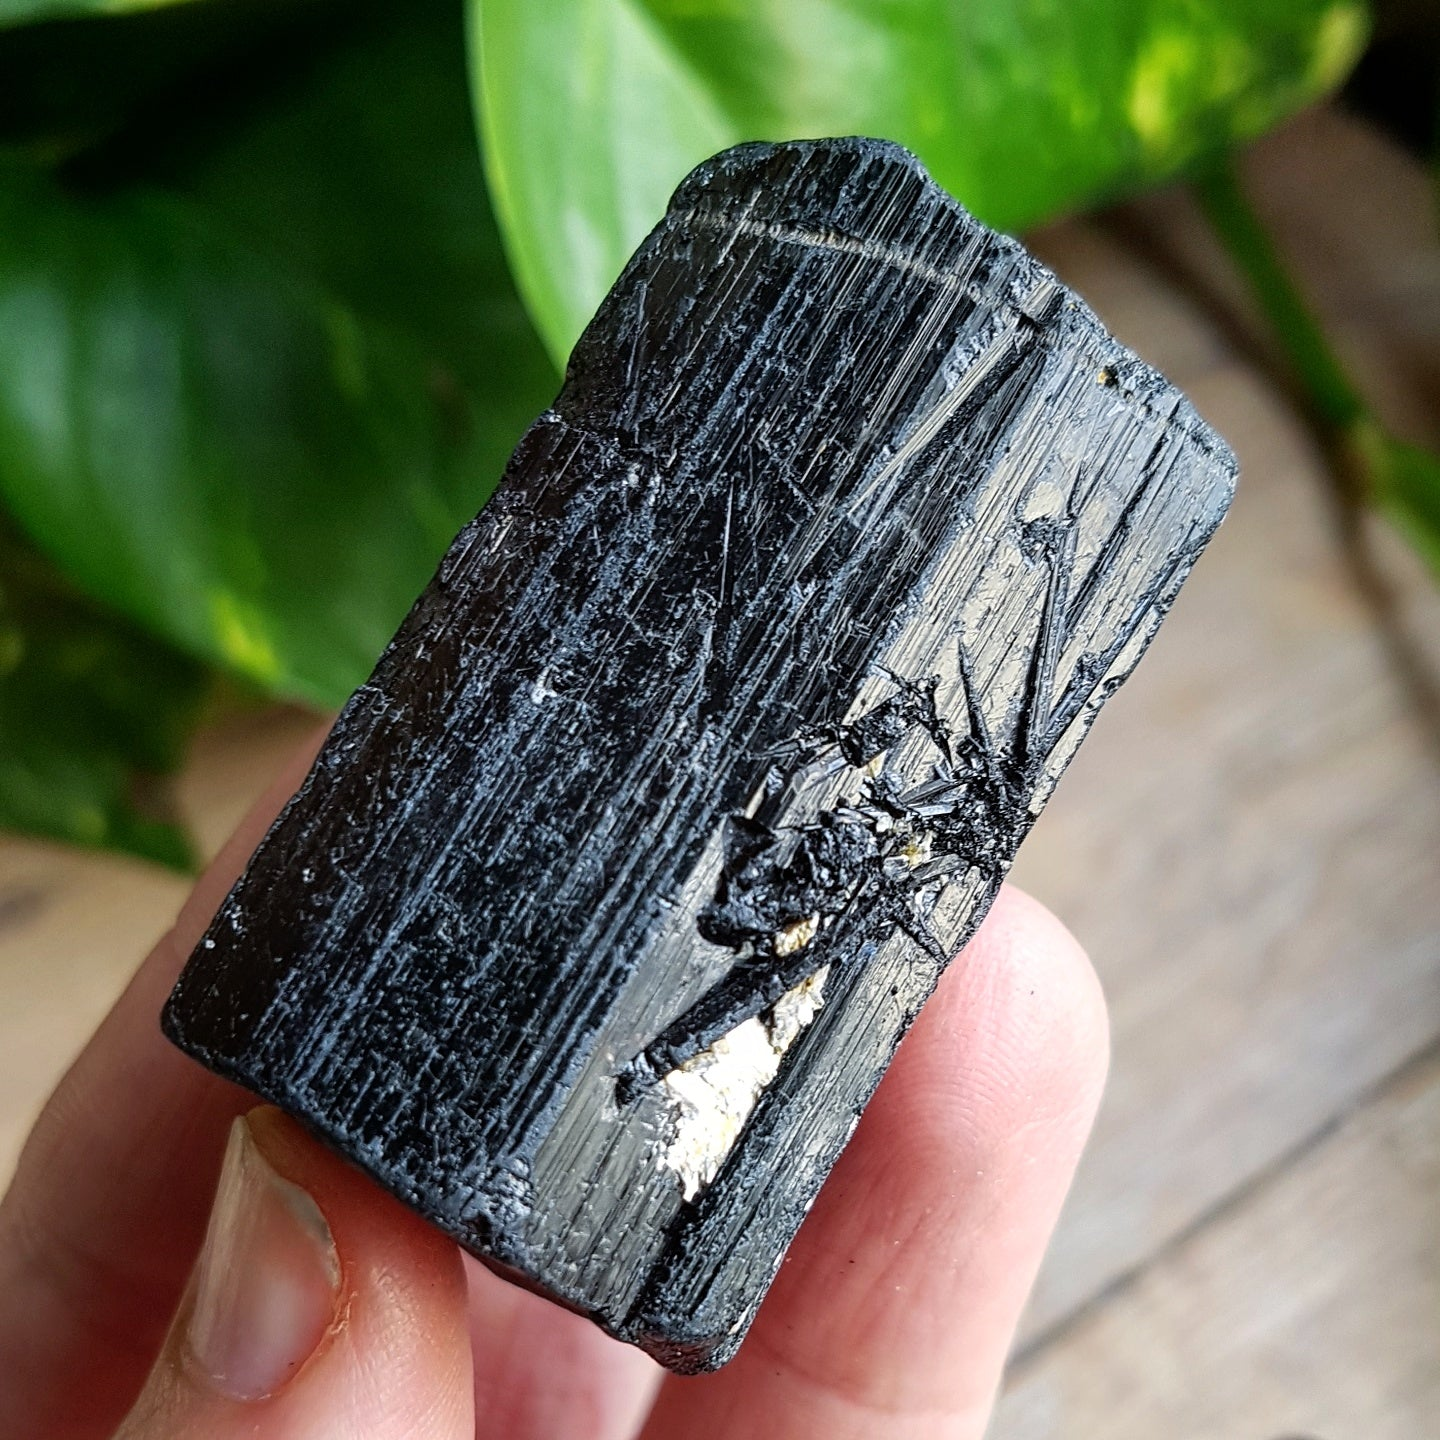 Black Tourmaline Crystals, Large, Raw